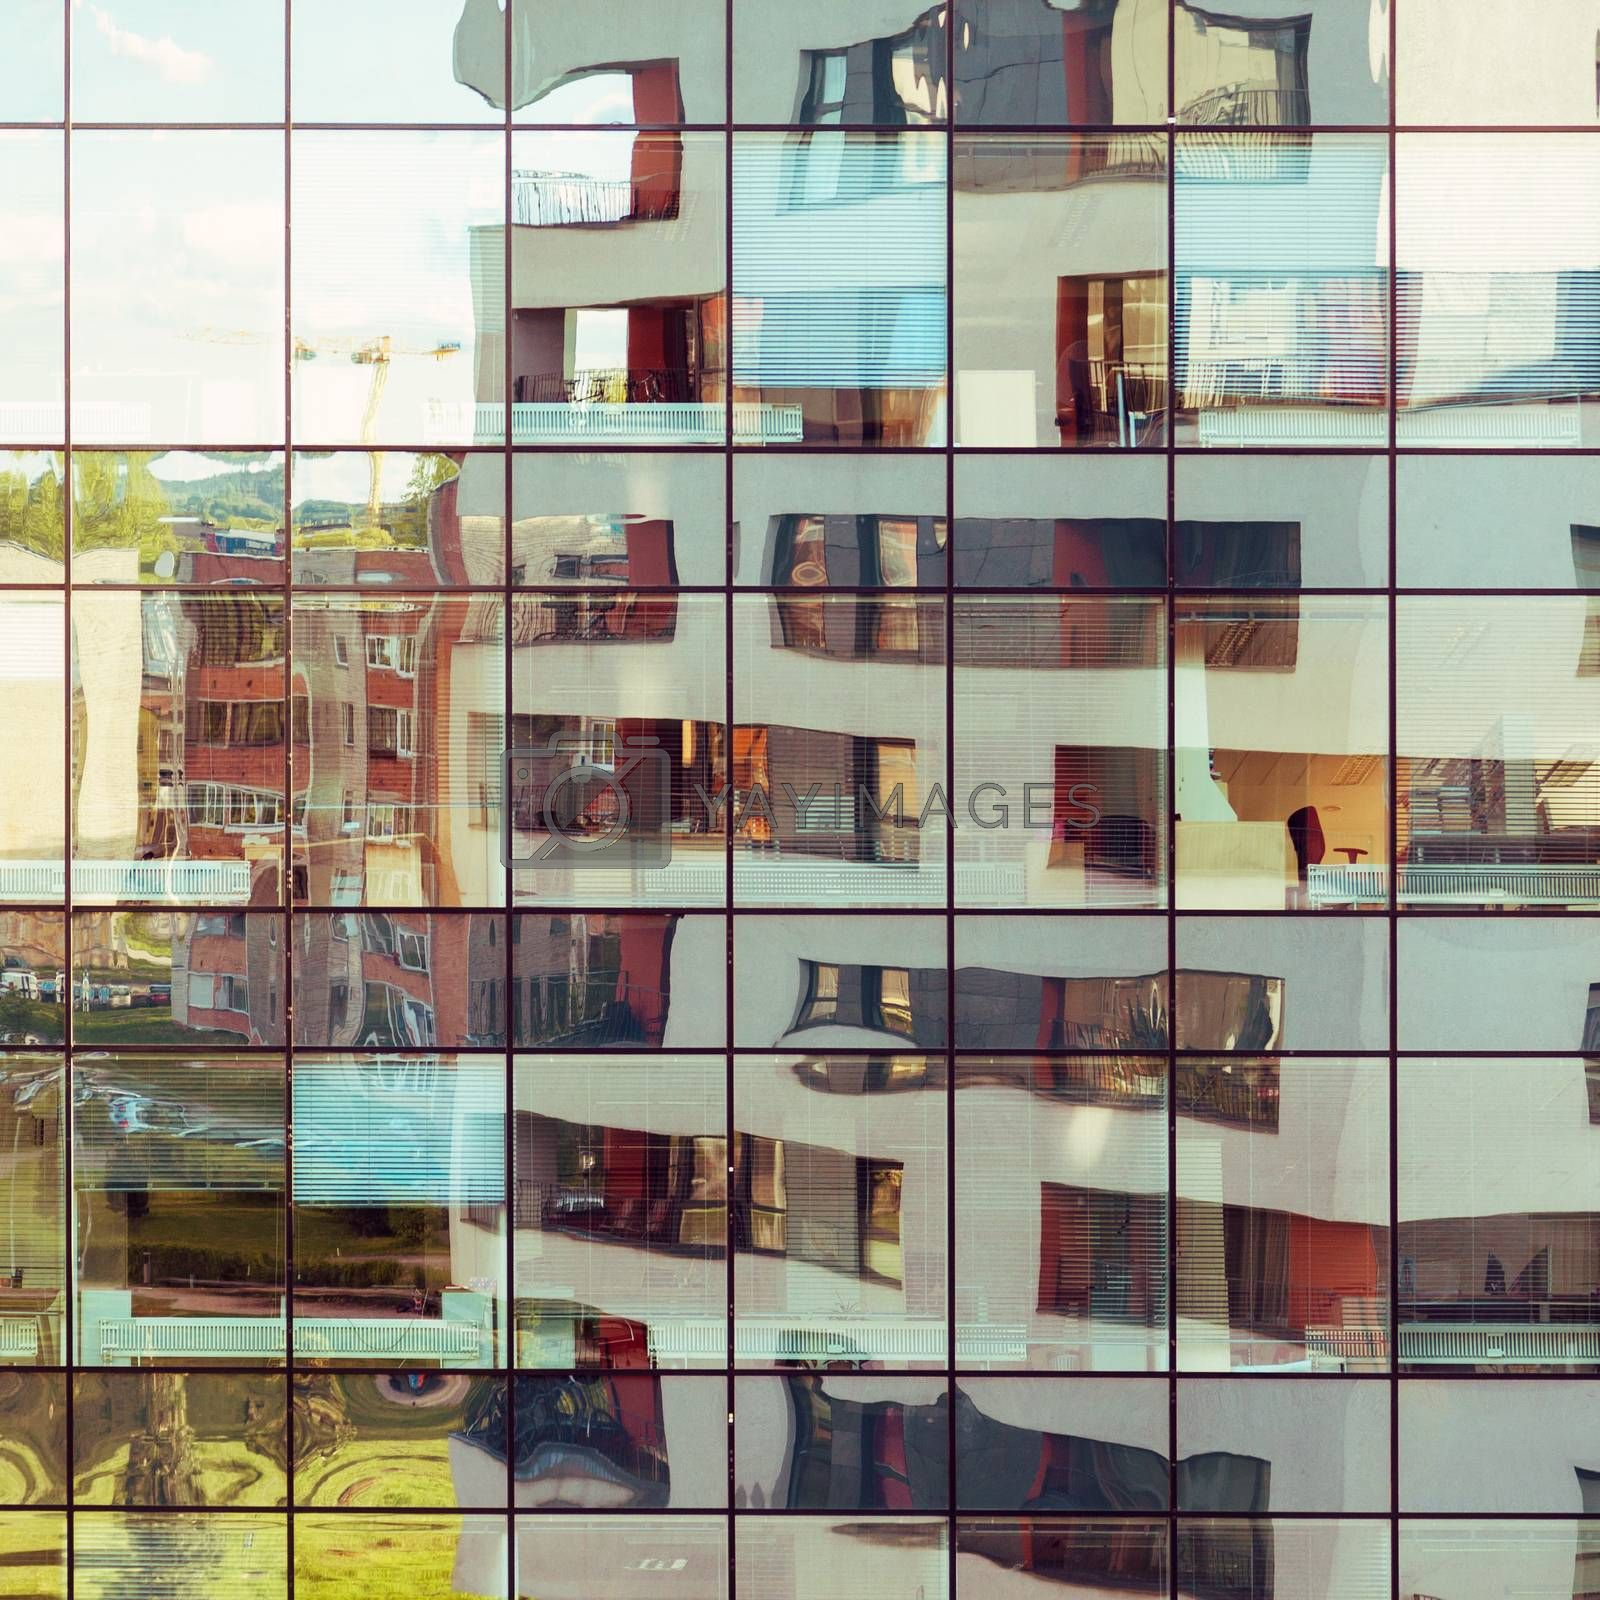 Modern architecture building reflected on glass facade of another building. Abstract looking background